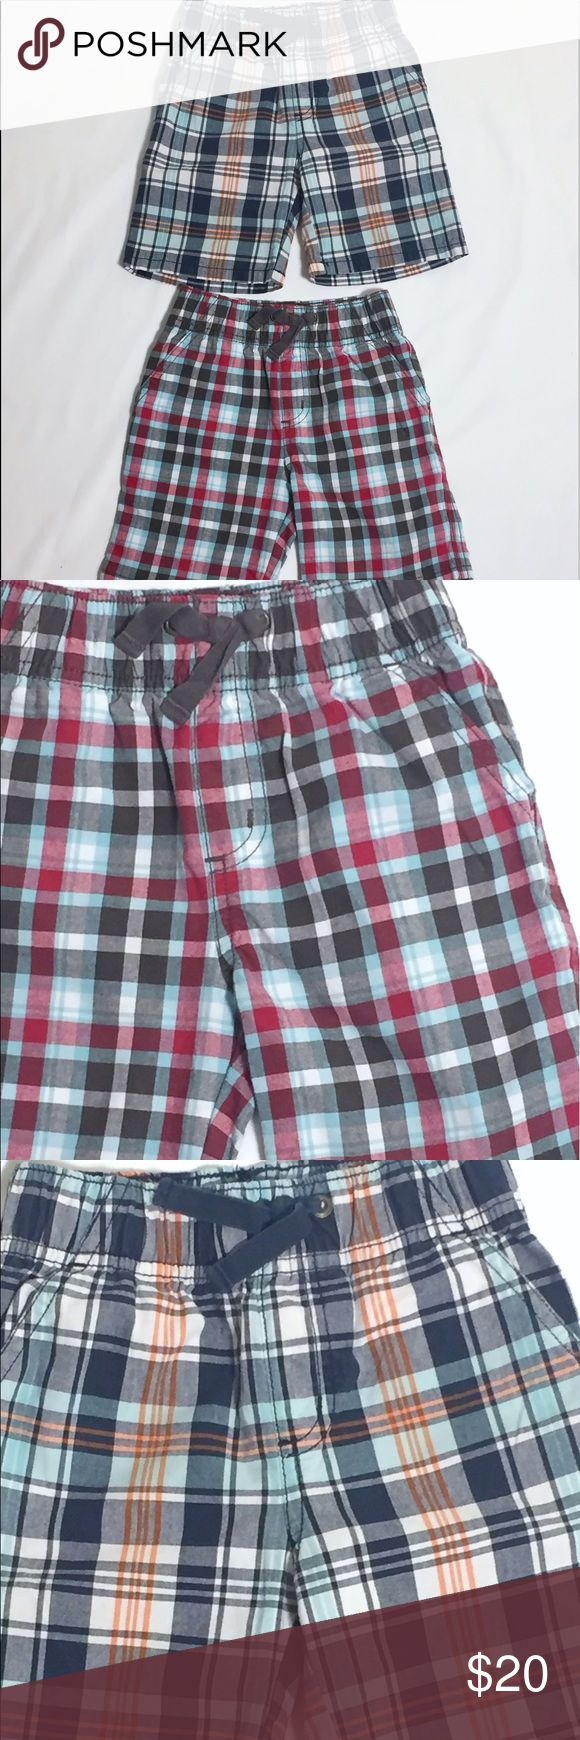 EUC Two pairs of Gymboree boys shorts. Size 2T TWO EXCELLENT used and cared for condition boys shorts. Gymboree size 2T. Plaid shorts with elastic waist and draw string. Two side pockets and two pockets on the back side. Price includes both pairs. Gymboree Bottoms Shorts